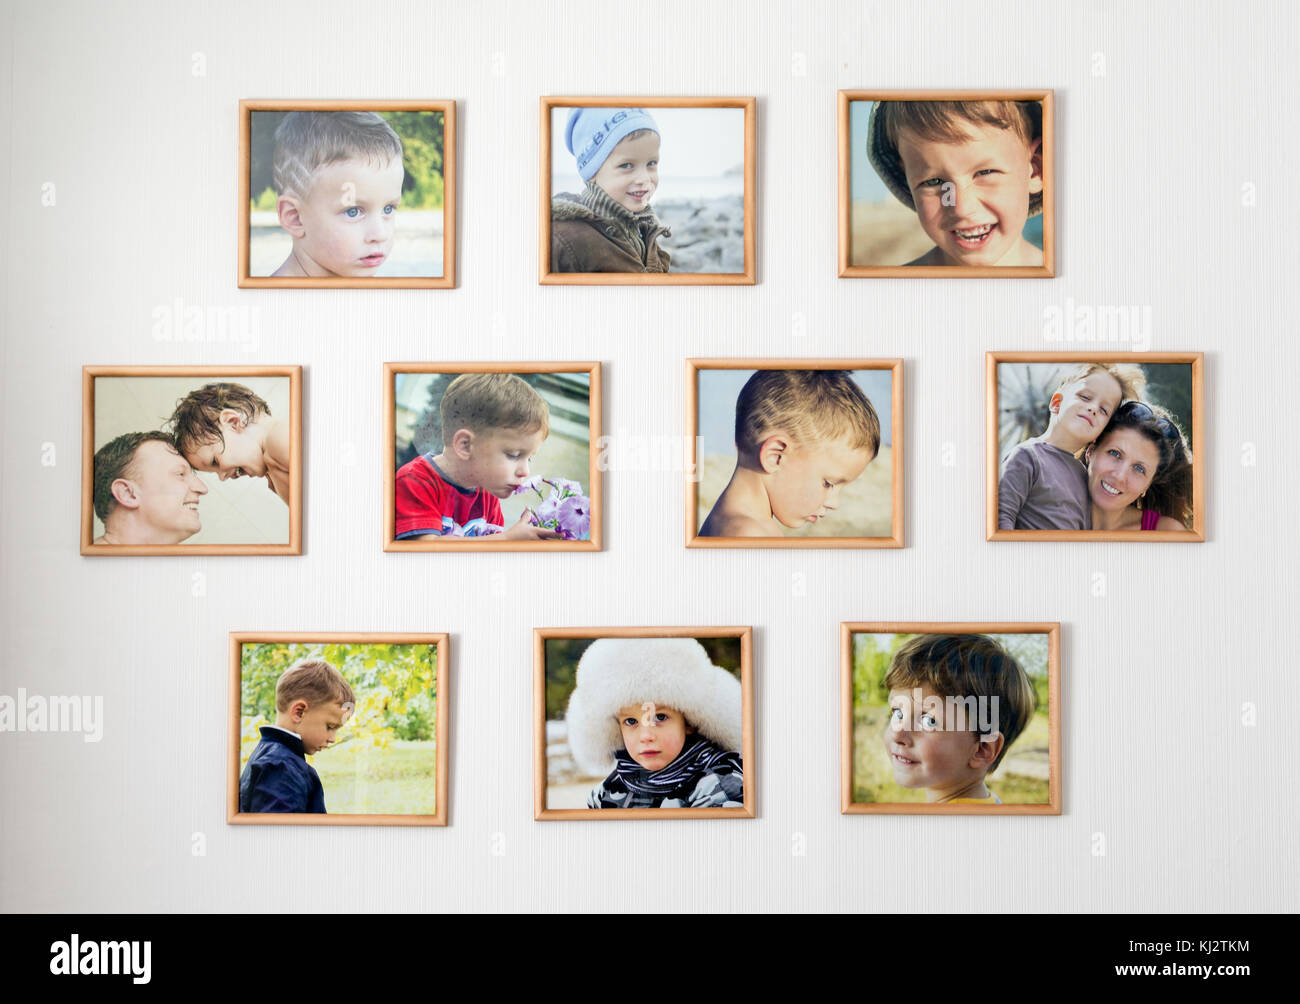 white wall with photos of the family in wooden photo frames - Stock Image